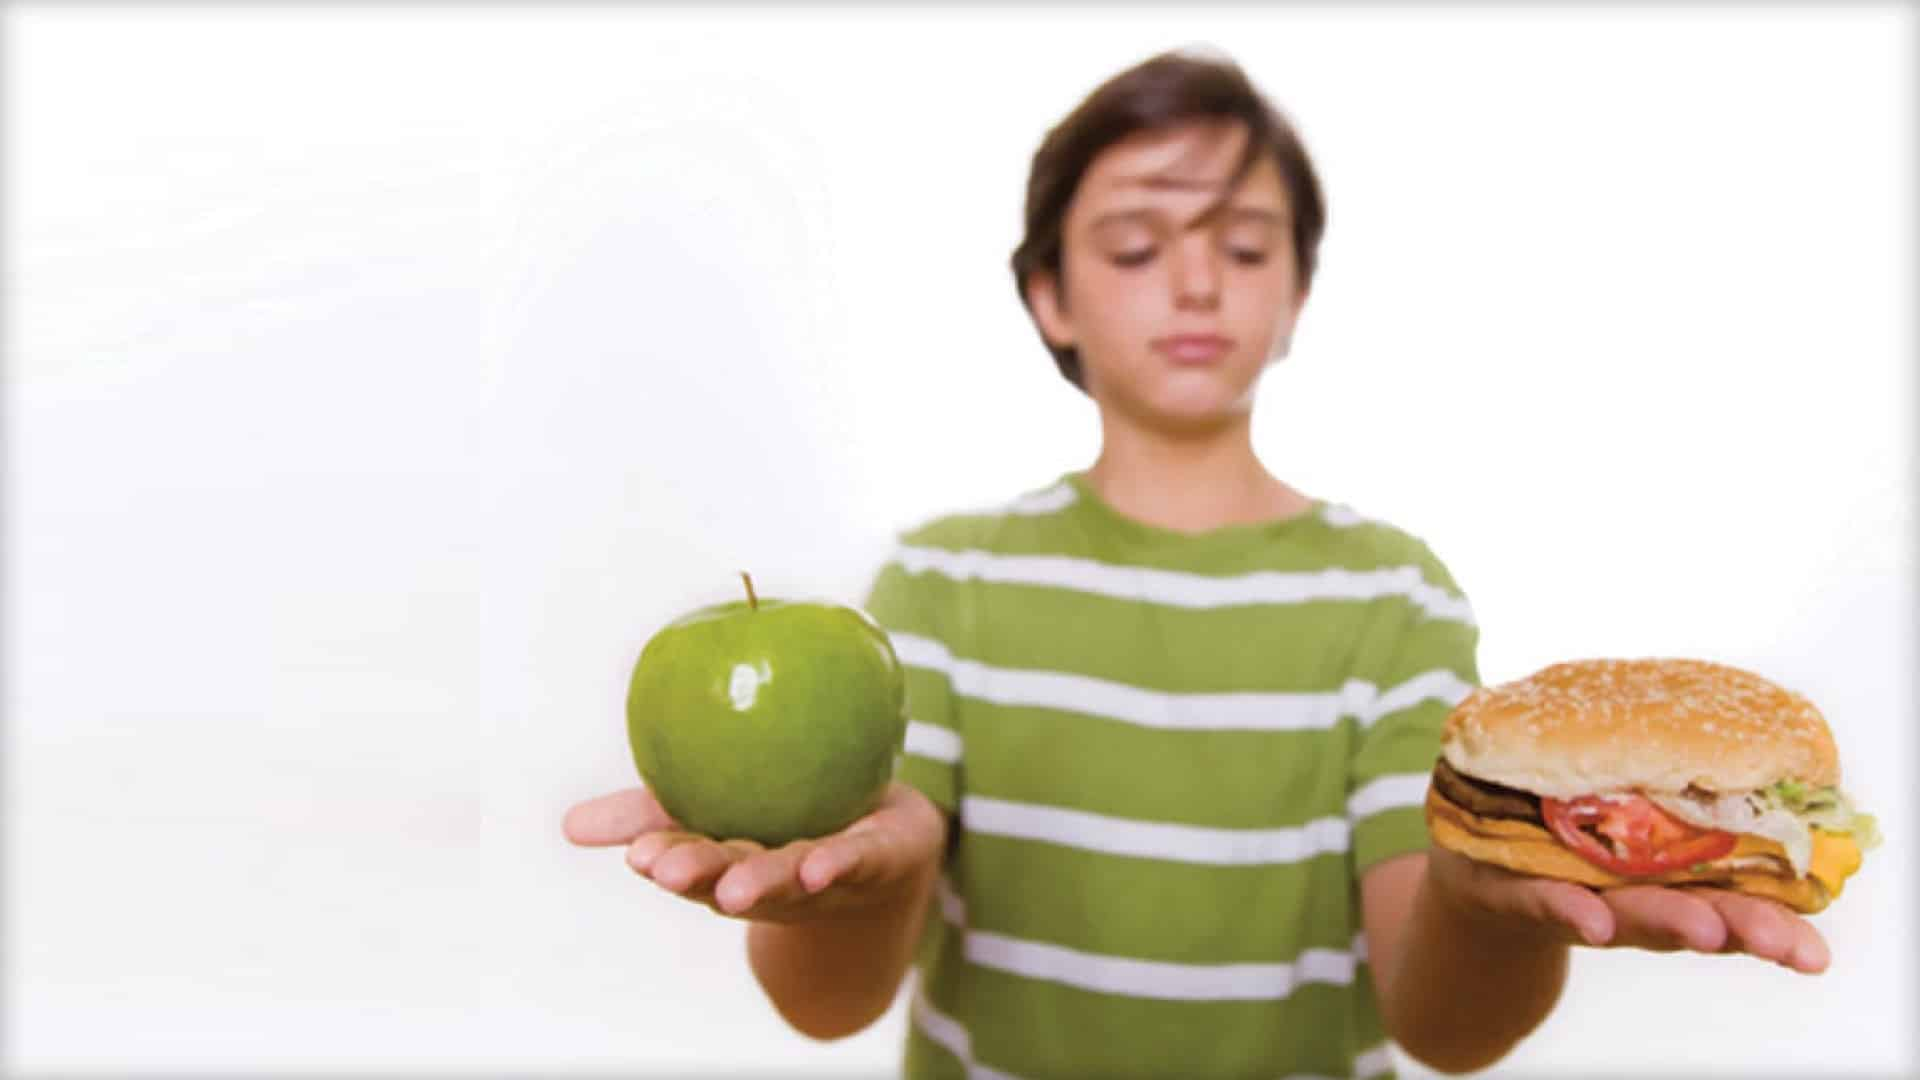 A person is shown holding an apple in one hand and a hamburger in the other. They appear to be weighing the decision of which to eat.